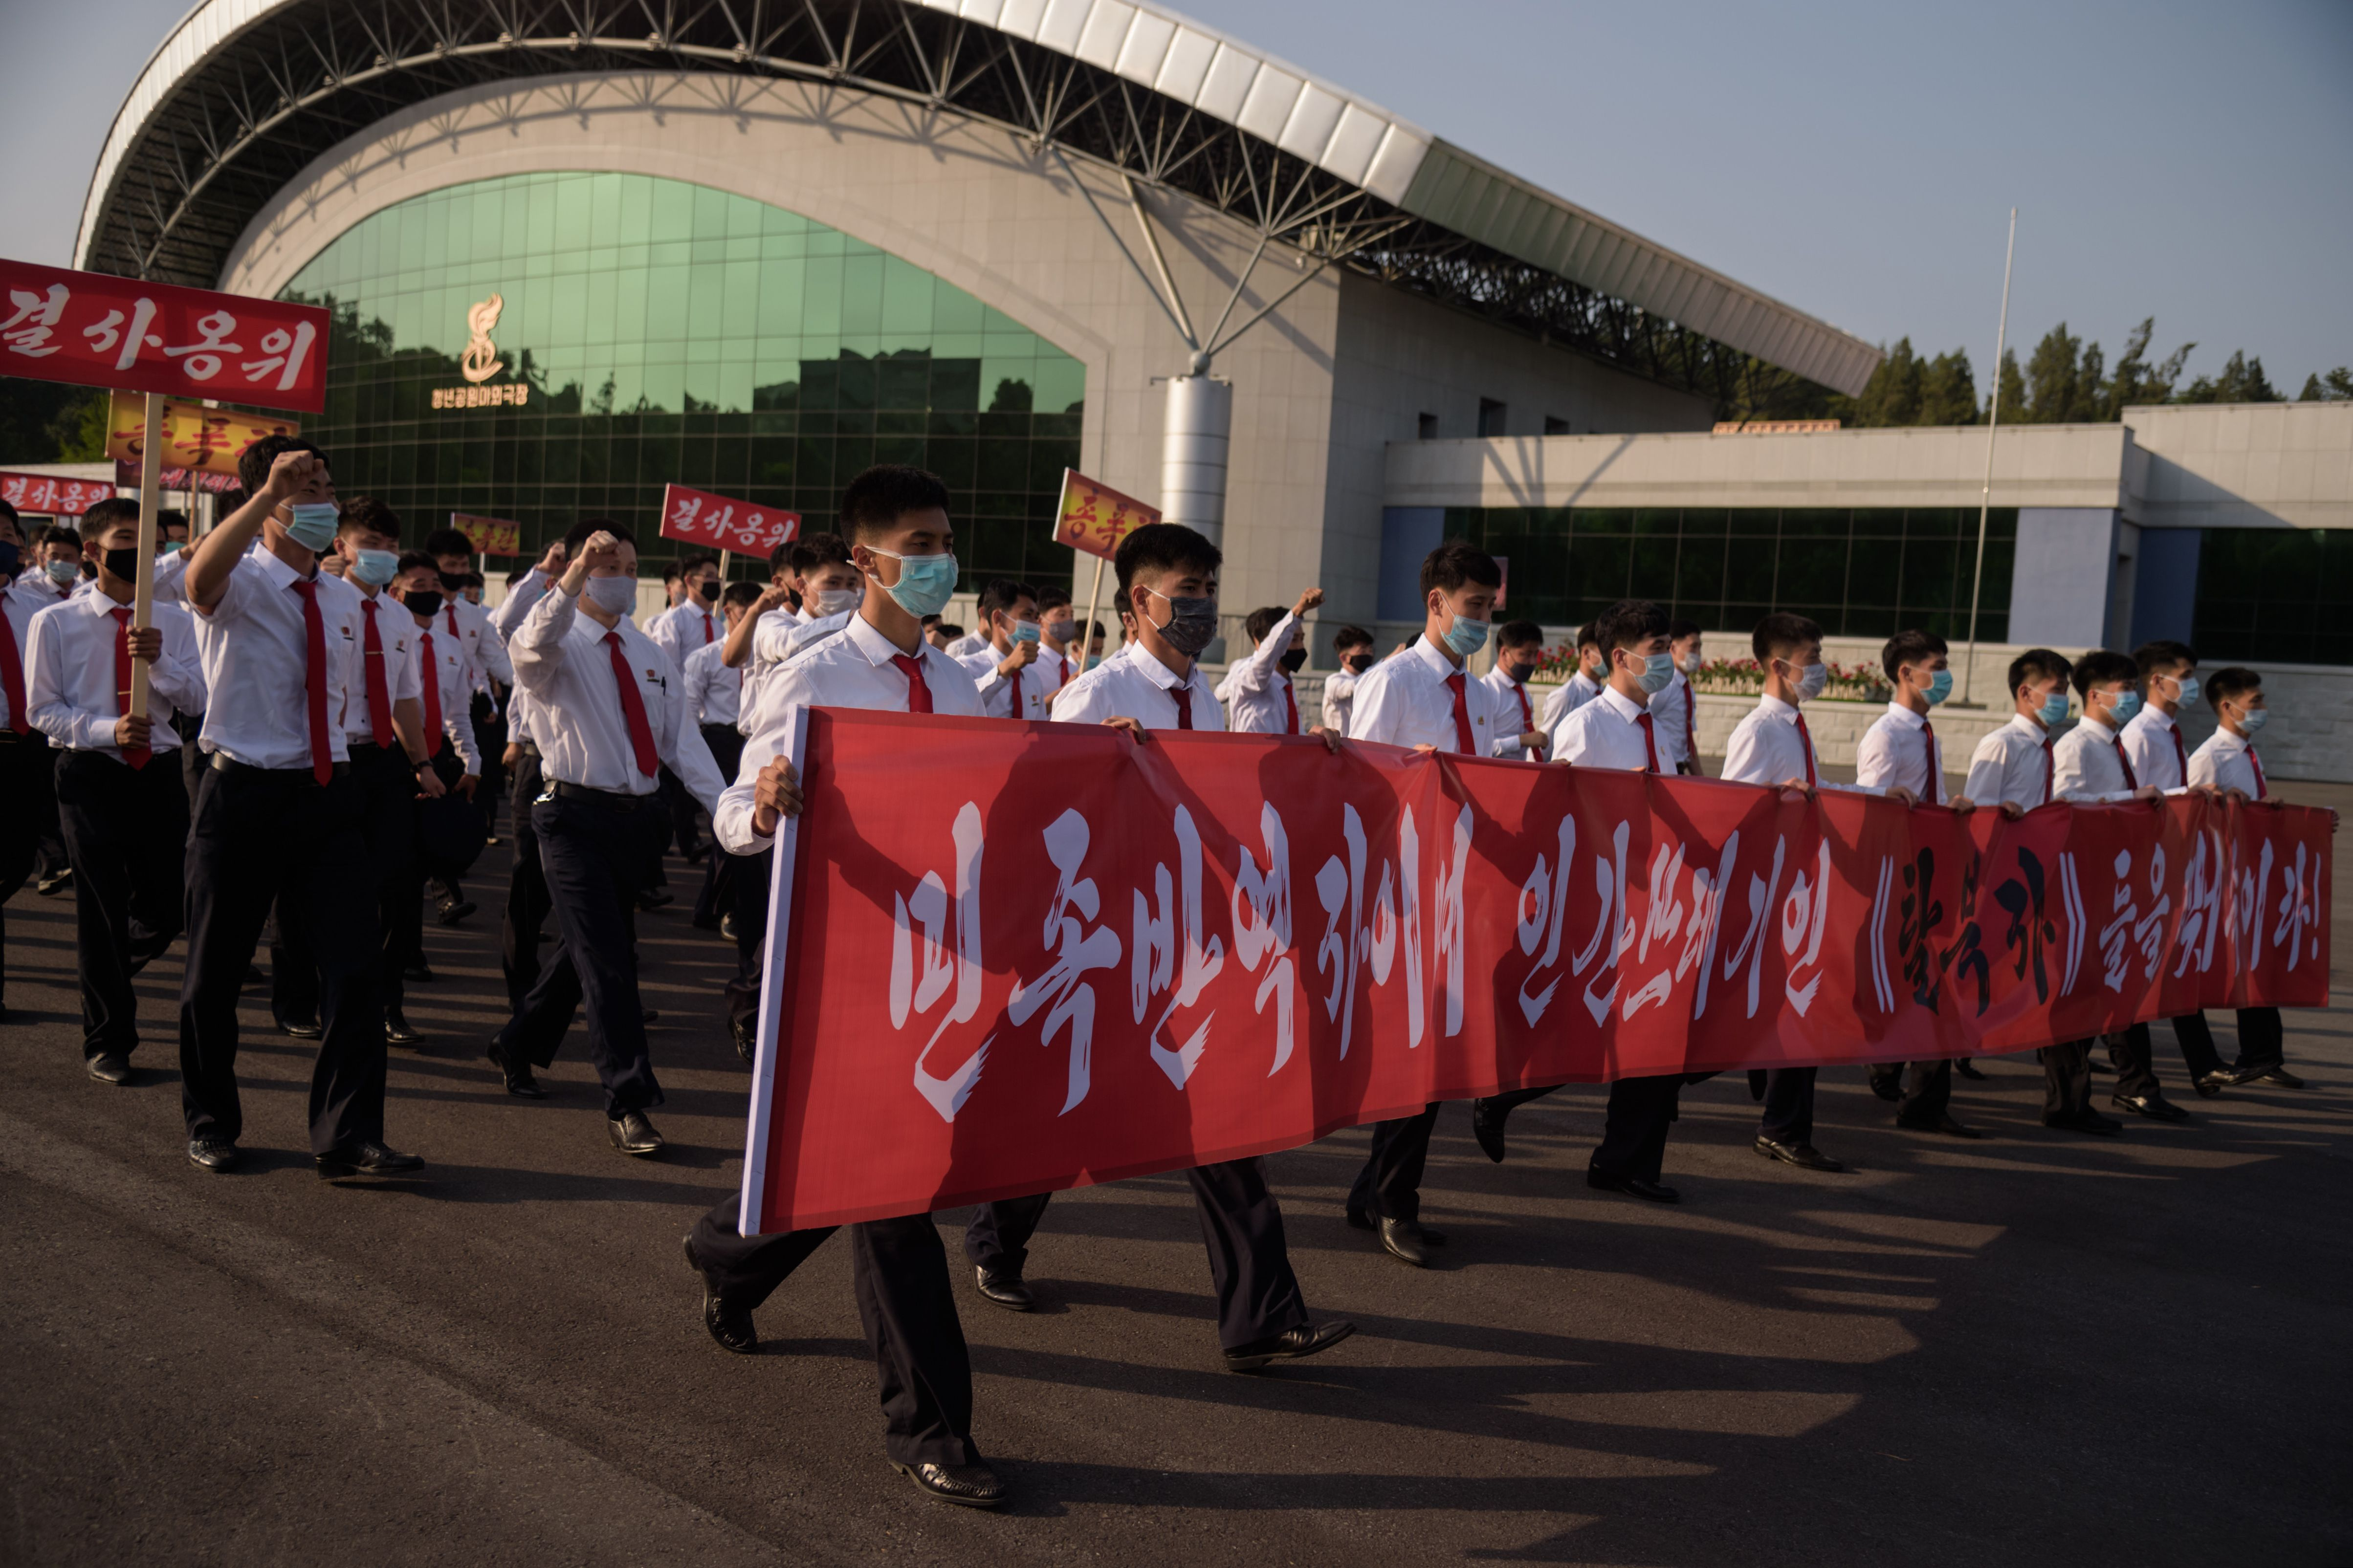 """North Korean students take part in a rally holding a banner reading: """"Tear up the 'defectors from the north' who are the betrayers of the nation and human scums!"""" as they march from the Pyongyang Youth Park Open-Air Theatre to Kim Il Sung Square in Pyongyang on June 8, 2020. (Photo by KIM WON JIN/AFP via Getty Images)"""